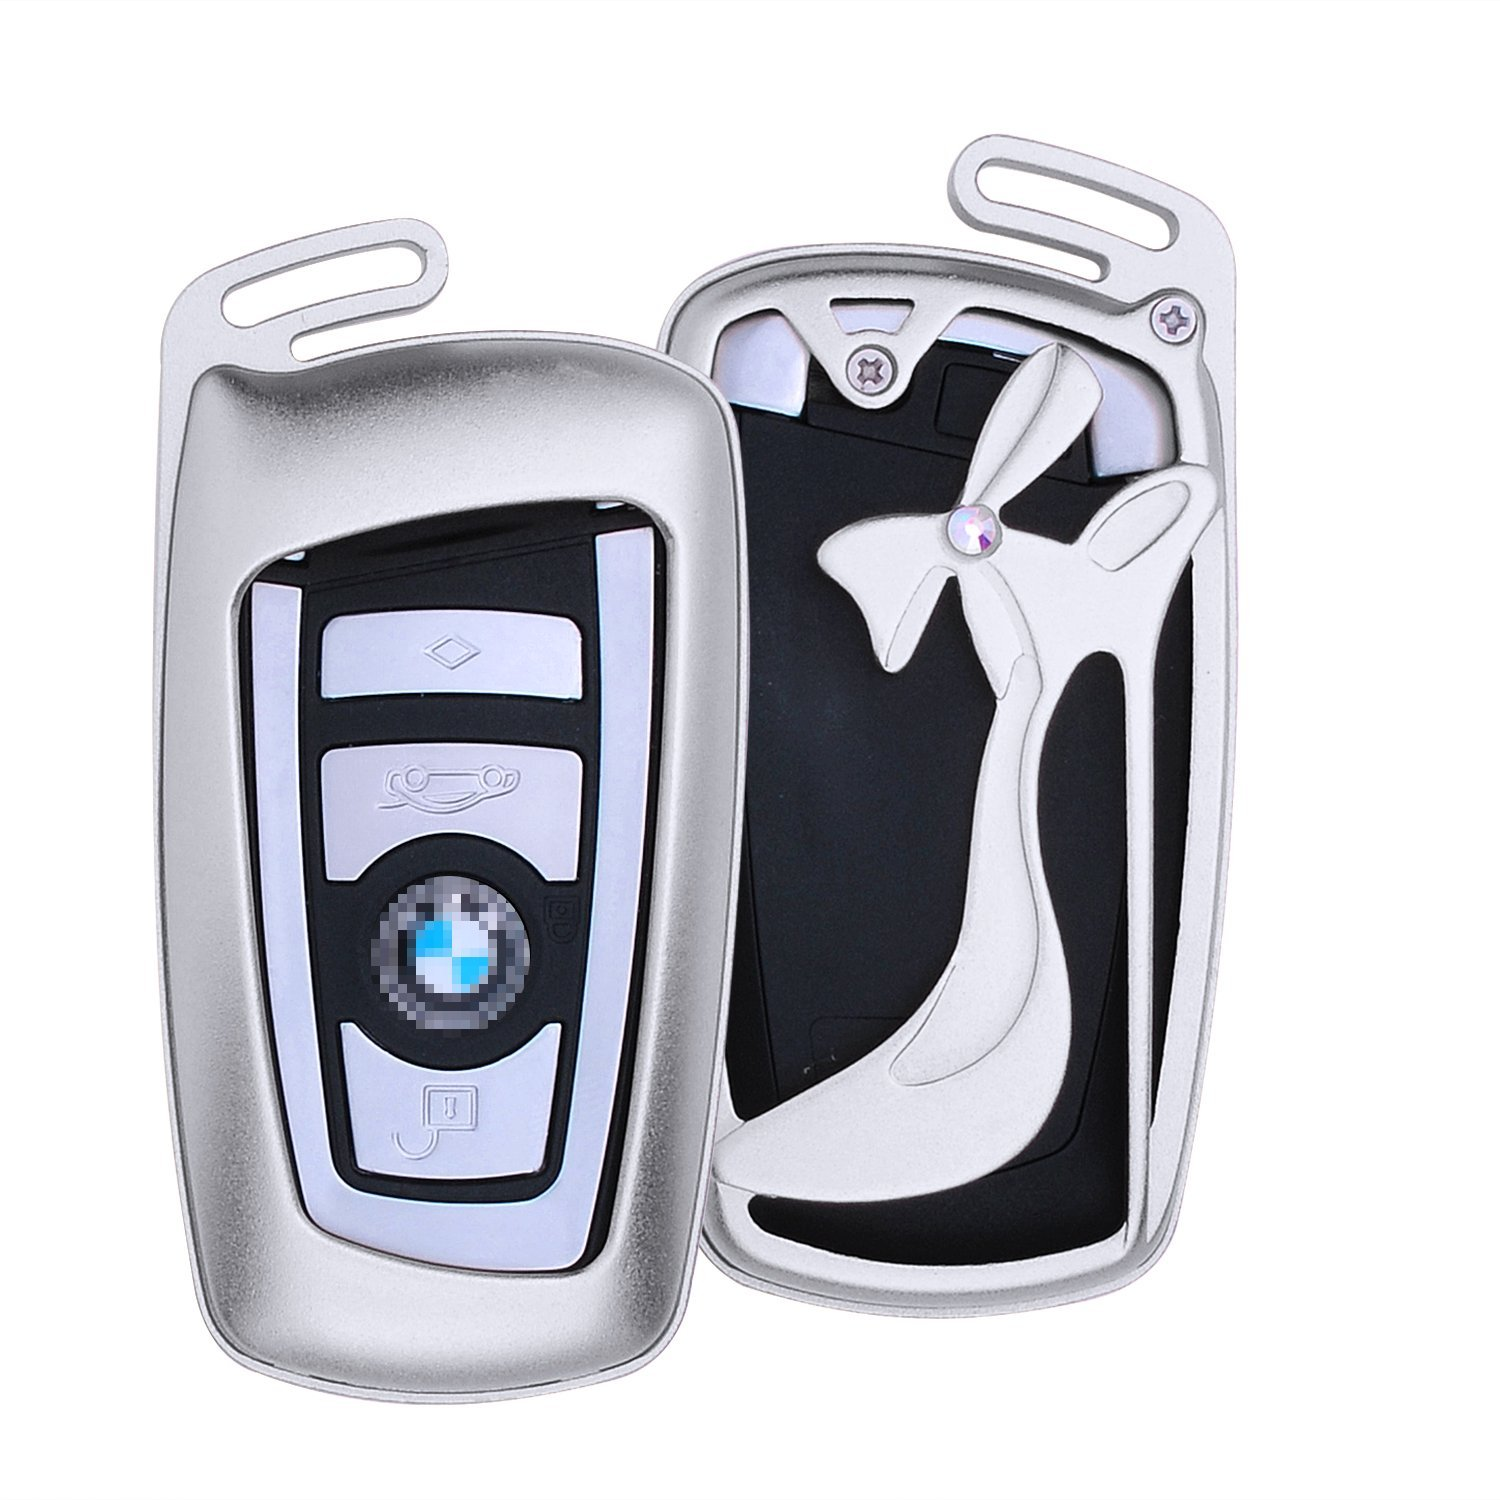 [M.JVisun] New Car Keyless Entry Key Case High-heeled Shoes Cover Fob Skin for BMW 1 Series 2 3 / GT 4 5 6 Series X3 X4 M2 M3 M4 M5 M6 , Aircraft Aluminum Shell Genuine Leather With Key Chain - Silver